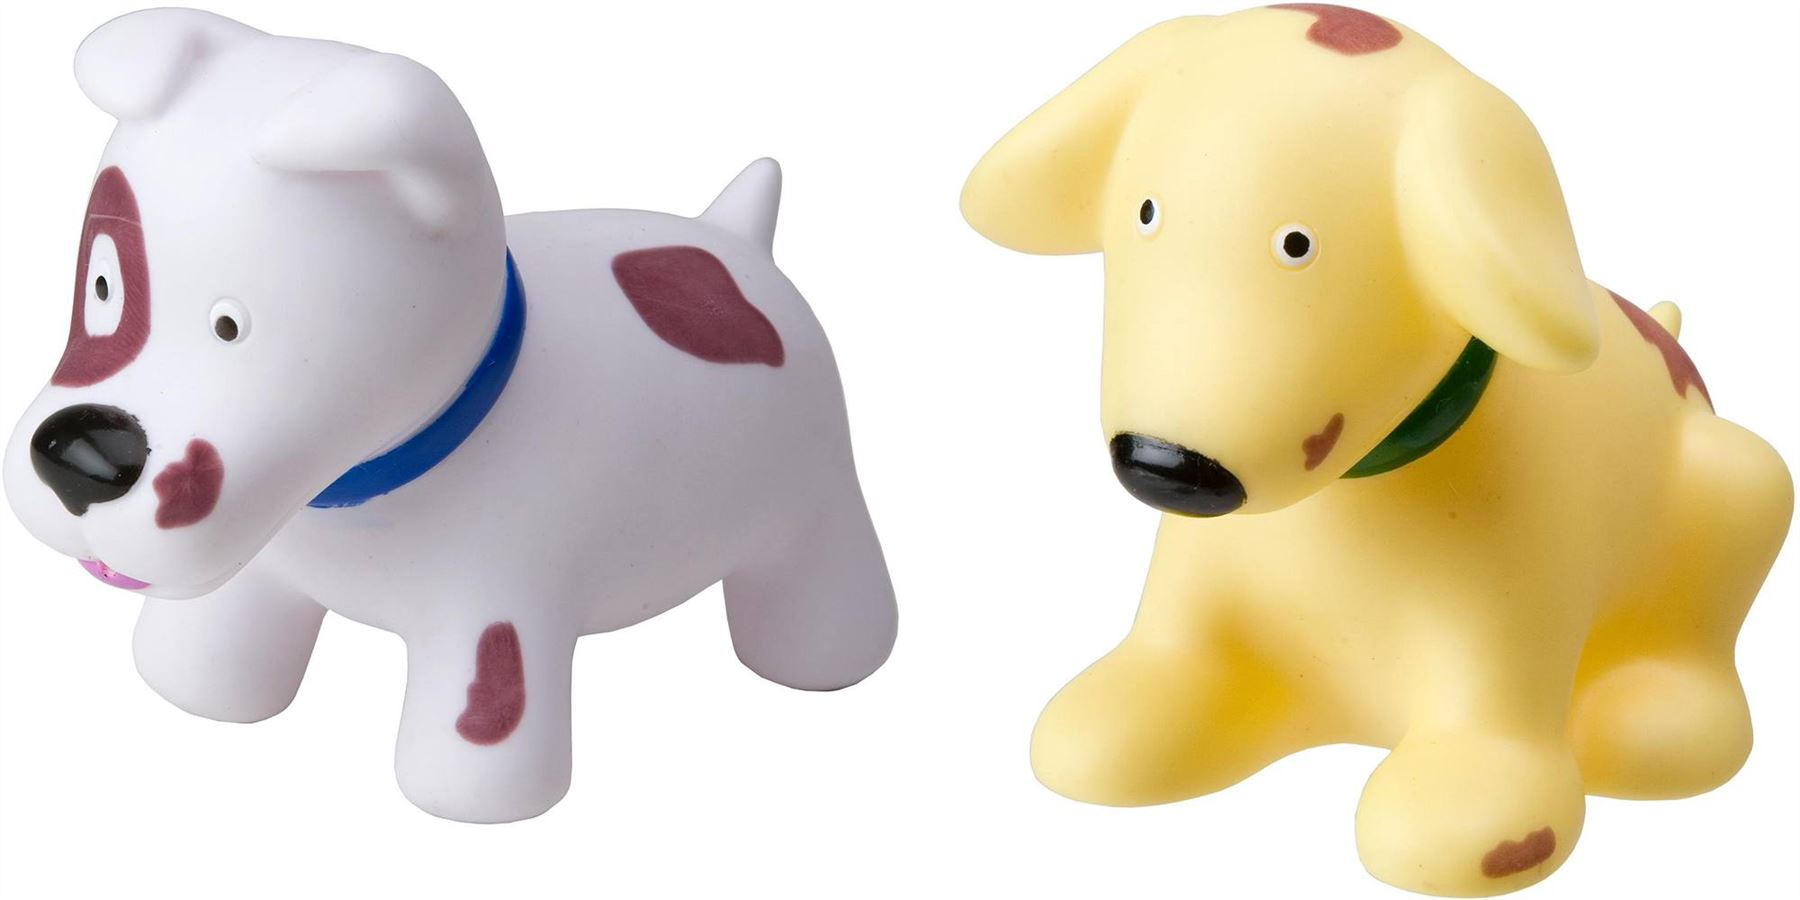 Alex DIRTY DOGS Wipe Clean Animal Squirters Bath Toy/Game Children Kids BN Bath Toys Baby Bathing/Grooming